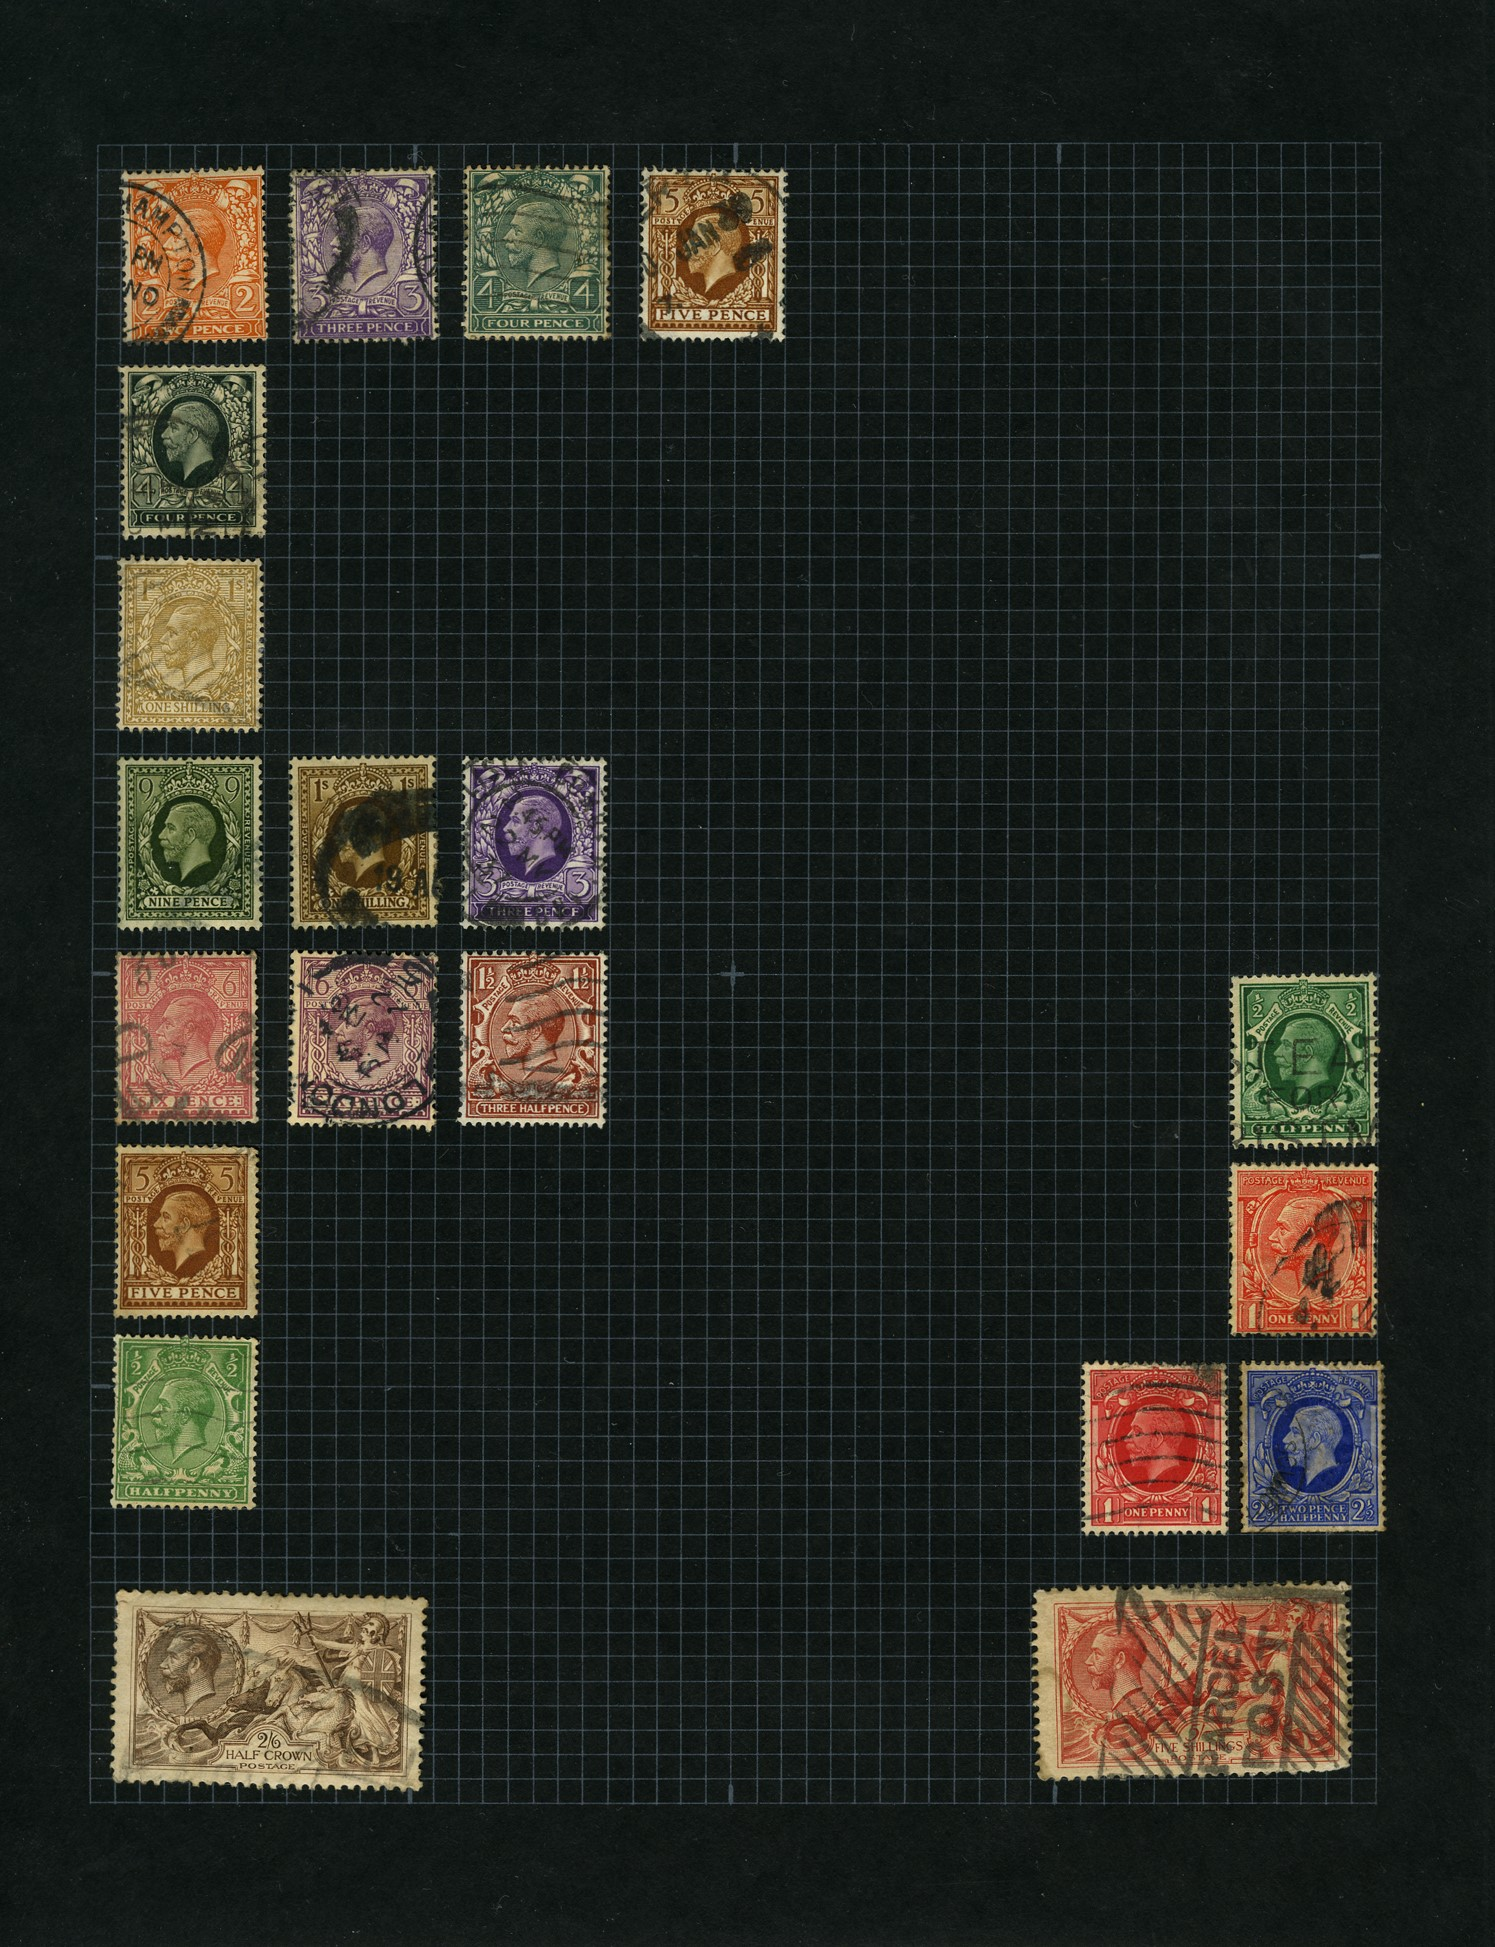 A black album page with mixed coloured stamps affixed in the shape of a letter 'F'.